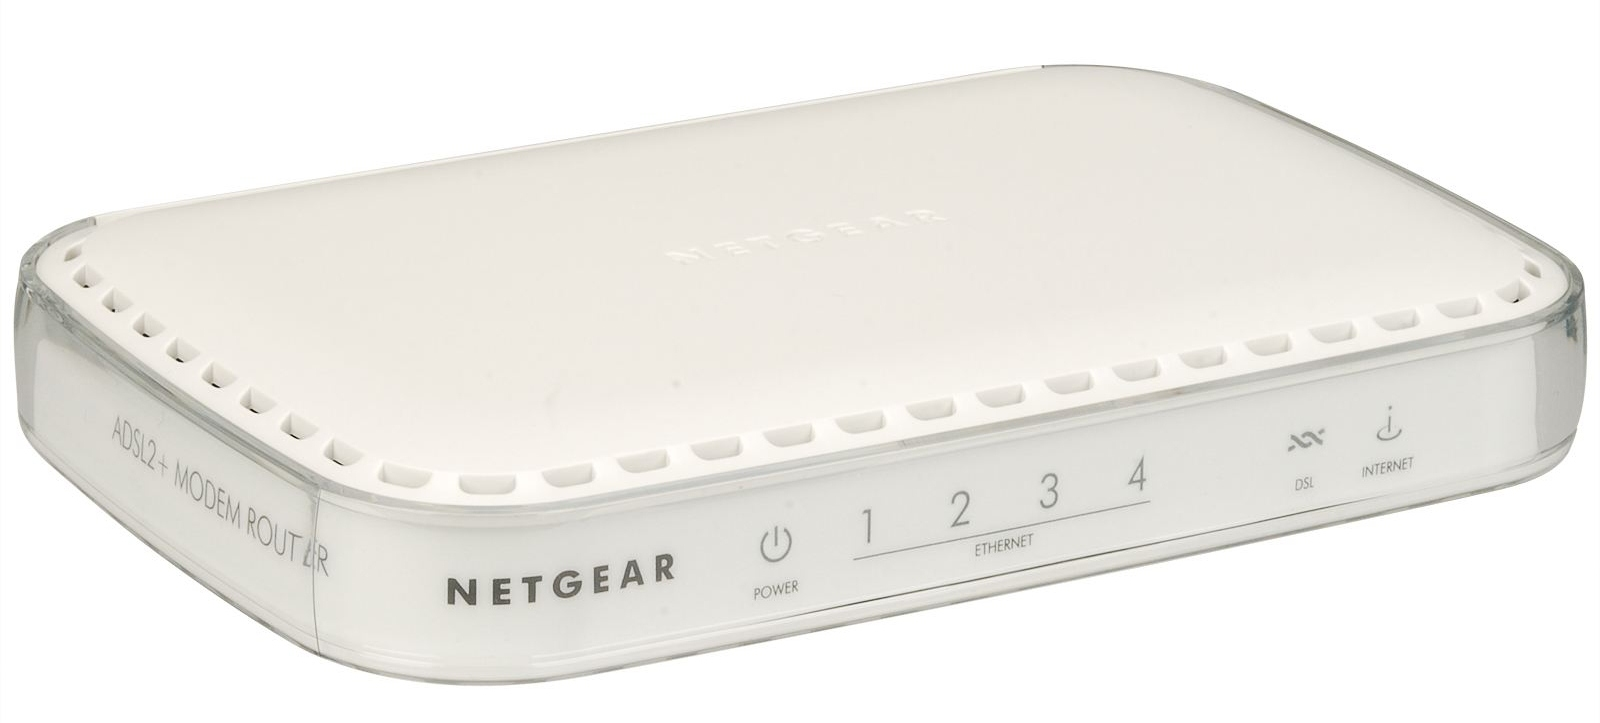 Netgear DG834UK ADSL2+ Router with 4 port 10/100 Mbps Switch